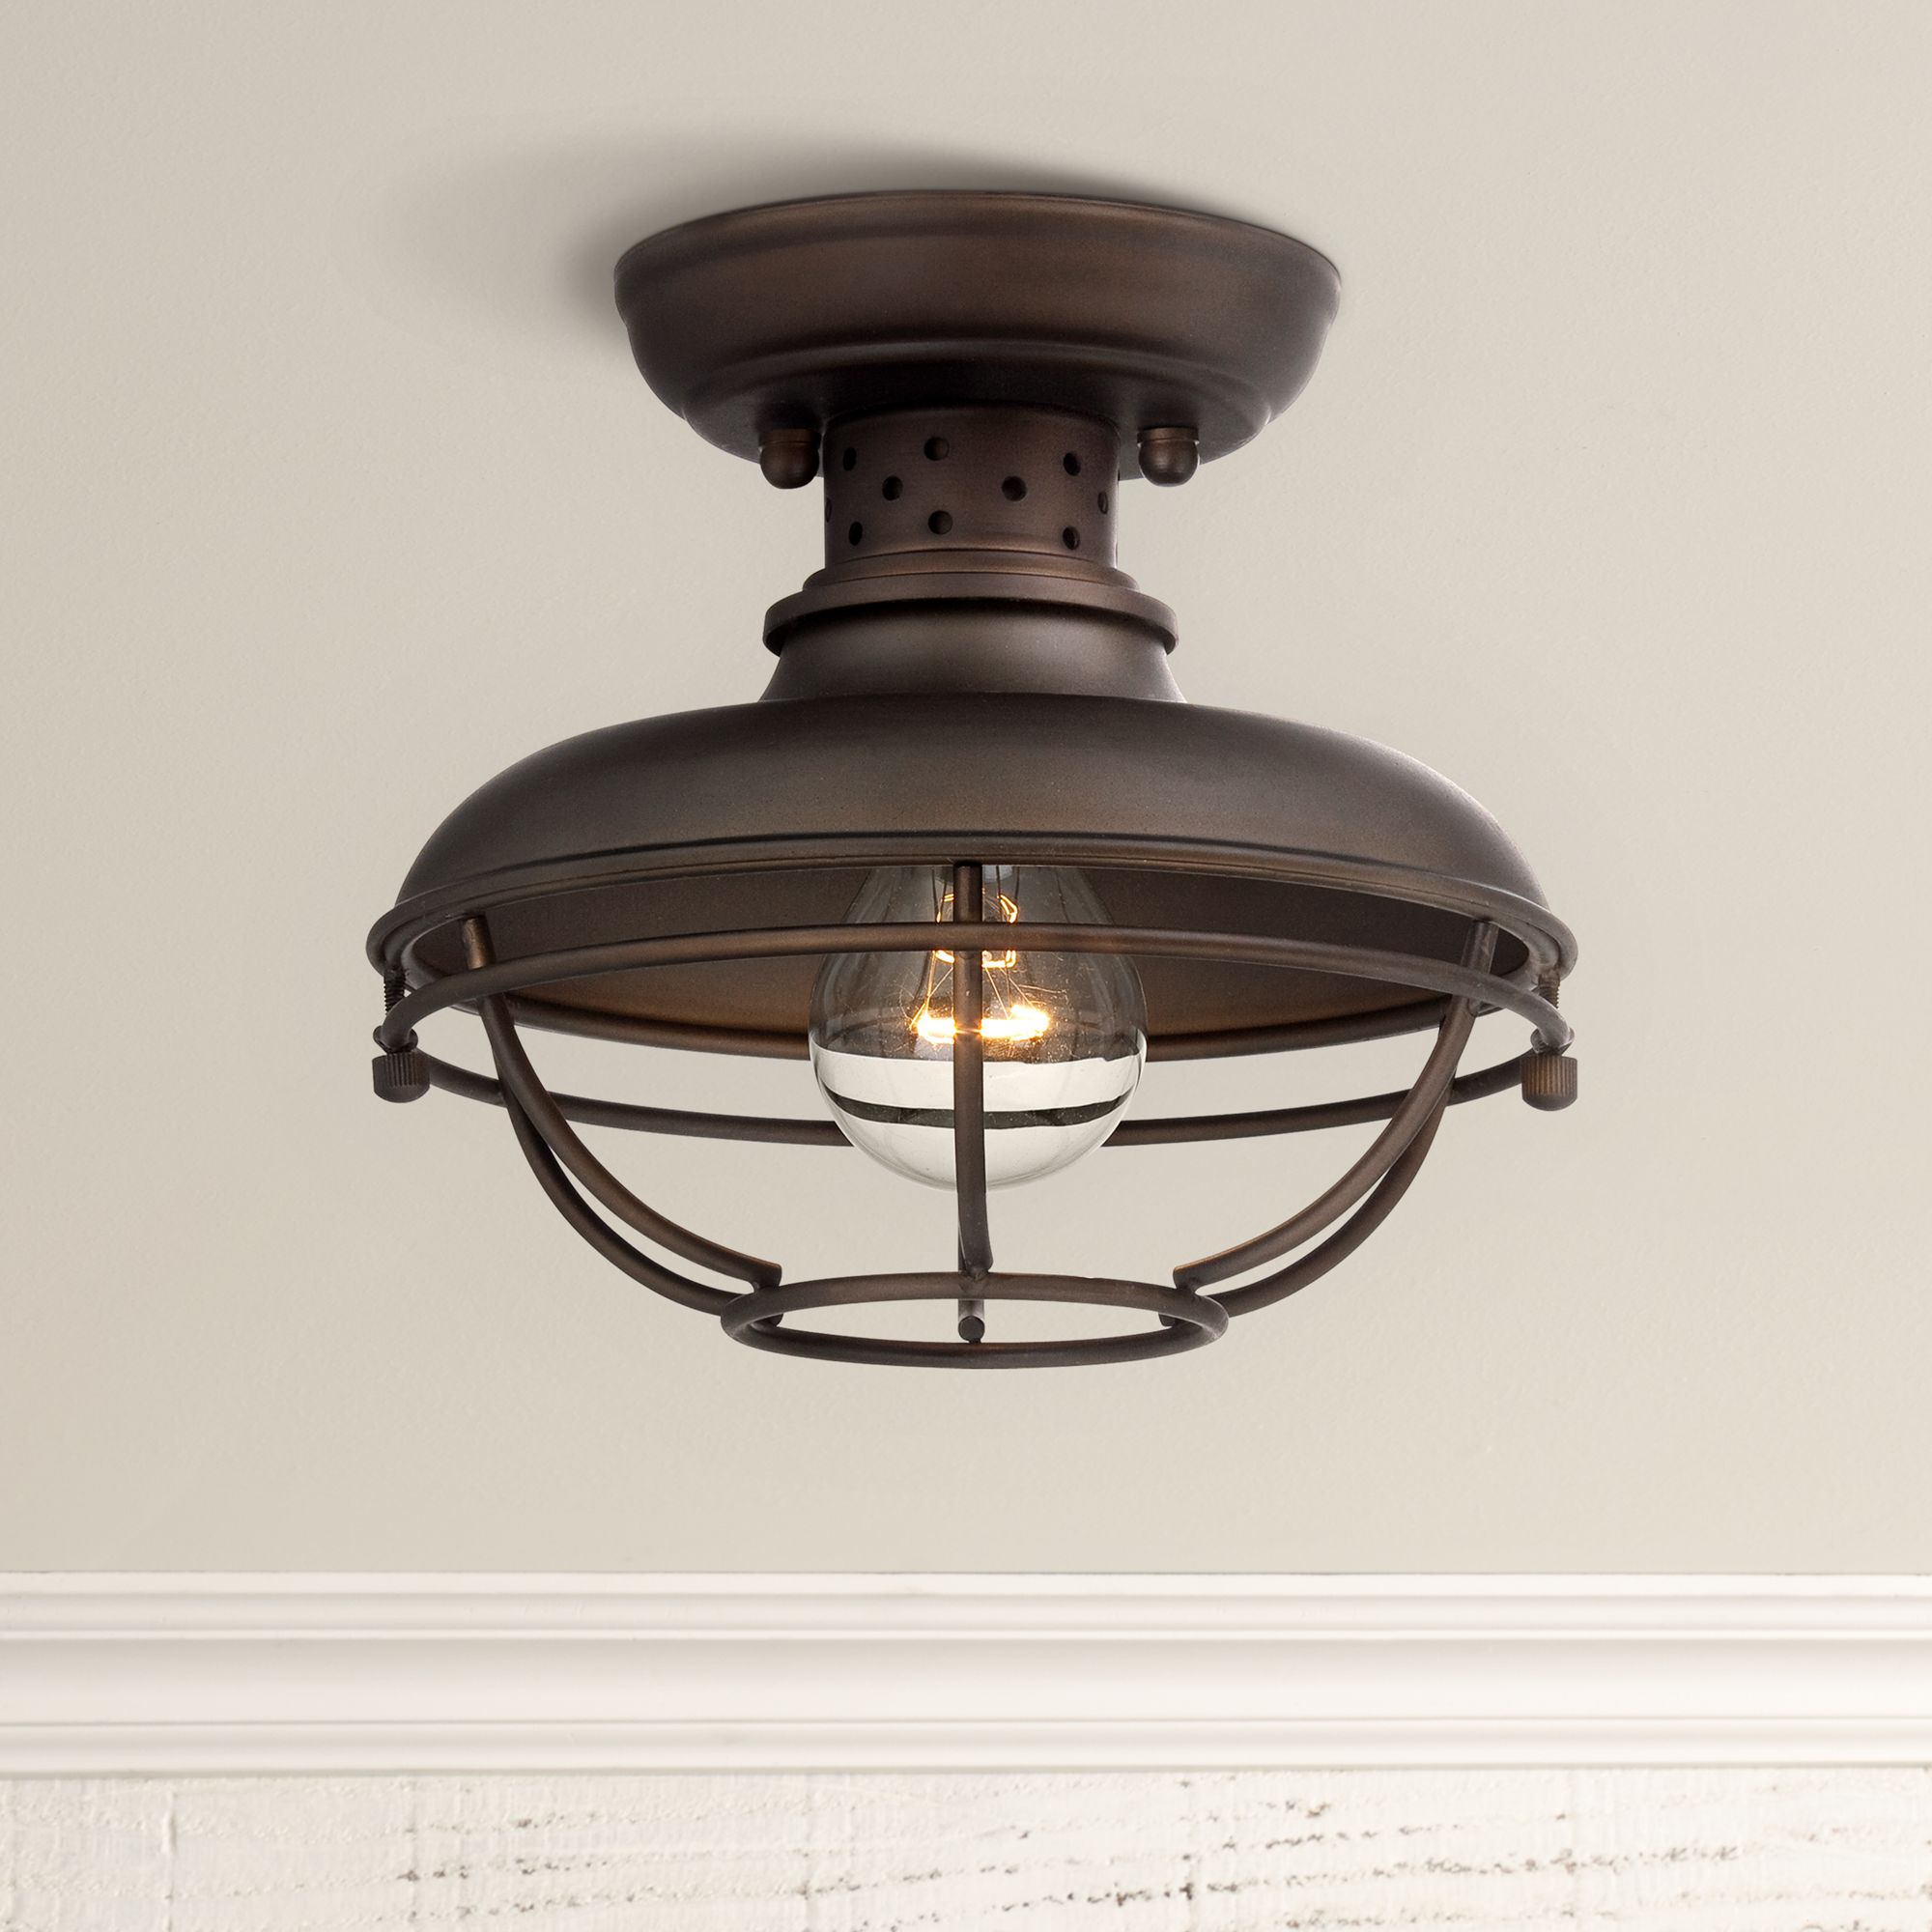 Outdoor Flush Mount Lighting Fixtures for Patio or Porch Lamps